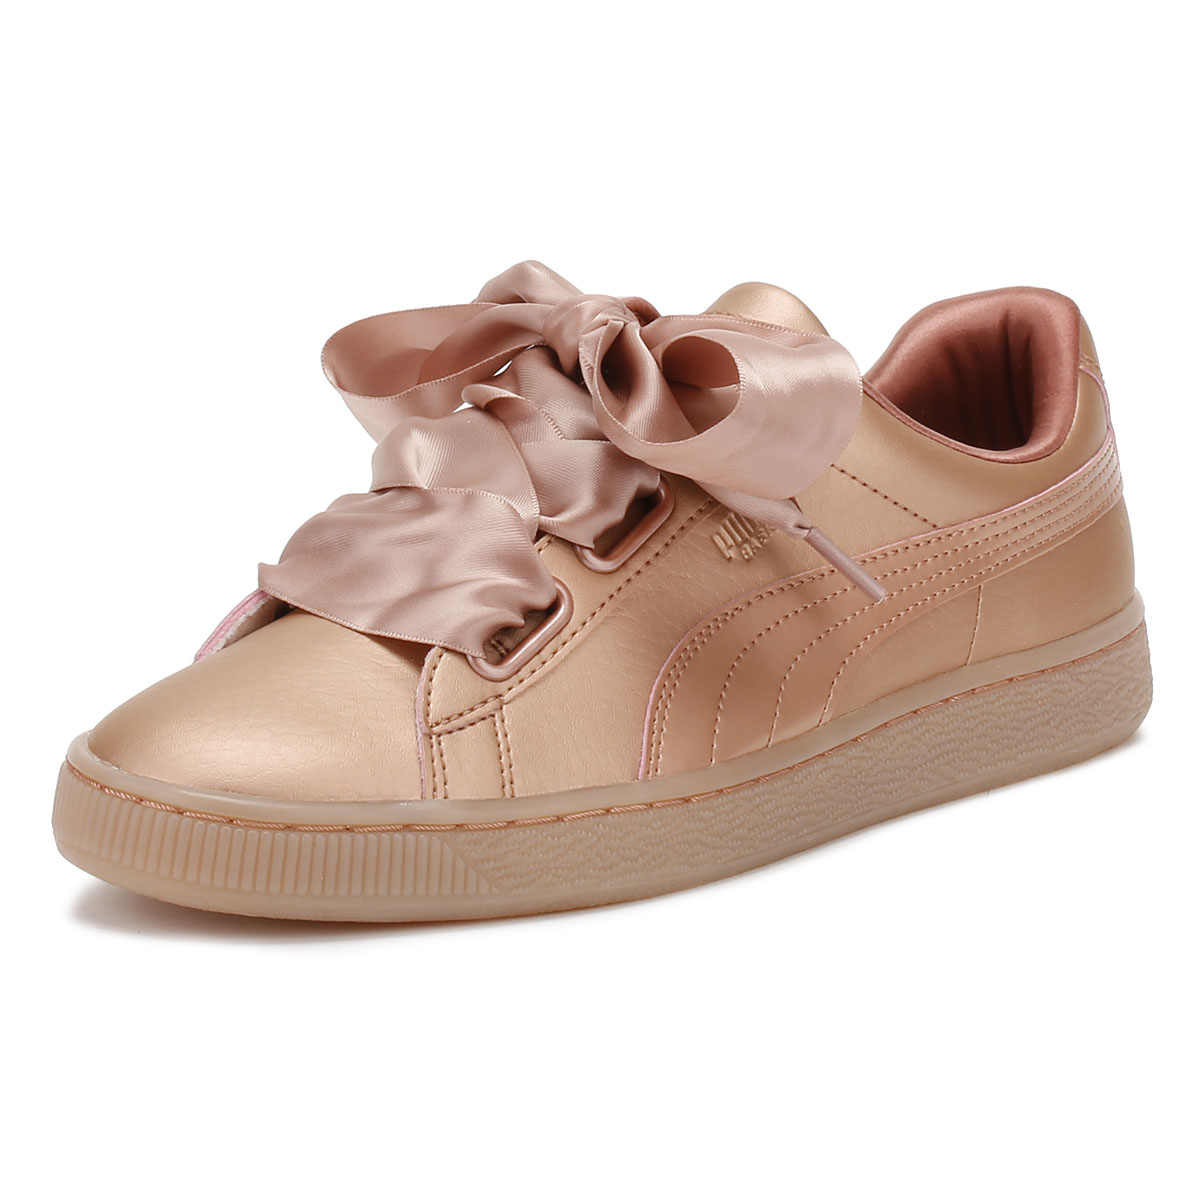 b0d37db30fc Details about PUMA Womens Copper Pink Trainers Basket Heart Patent Leather  Ladies Shoes